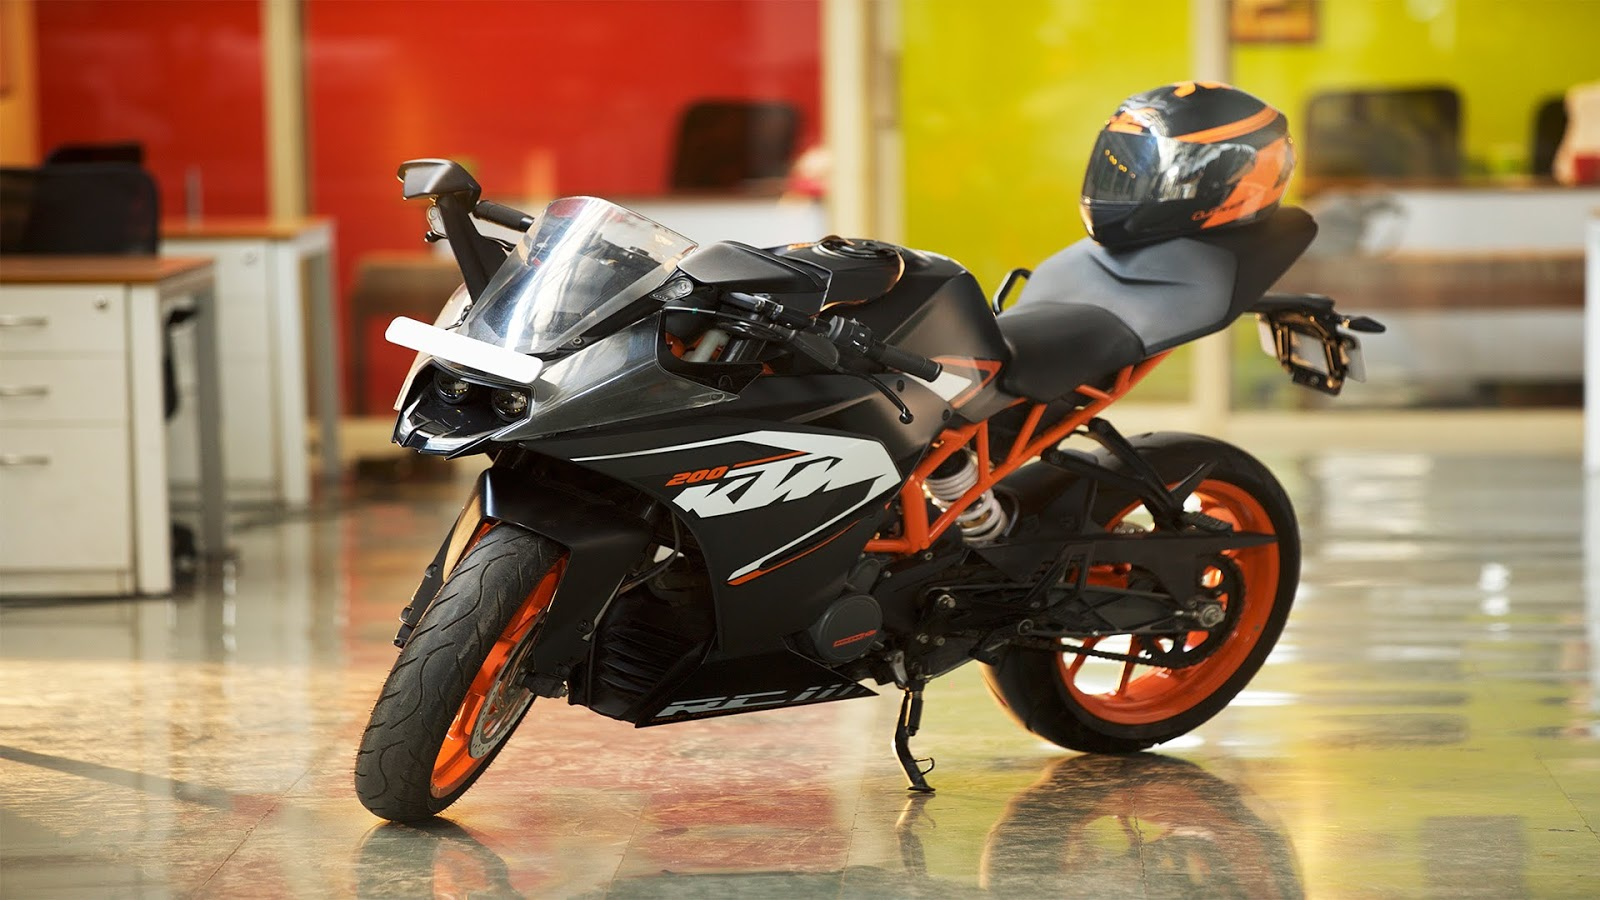 Also We Are Collecting KTM RC 390 Images 250 Duck And 200 Sport Bike You Will Free Download Save For All Devices